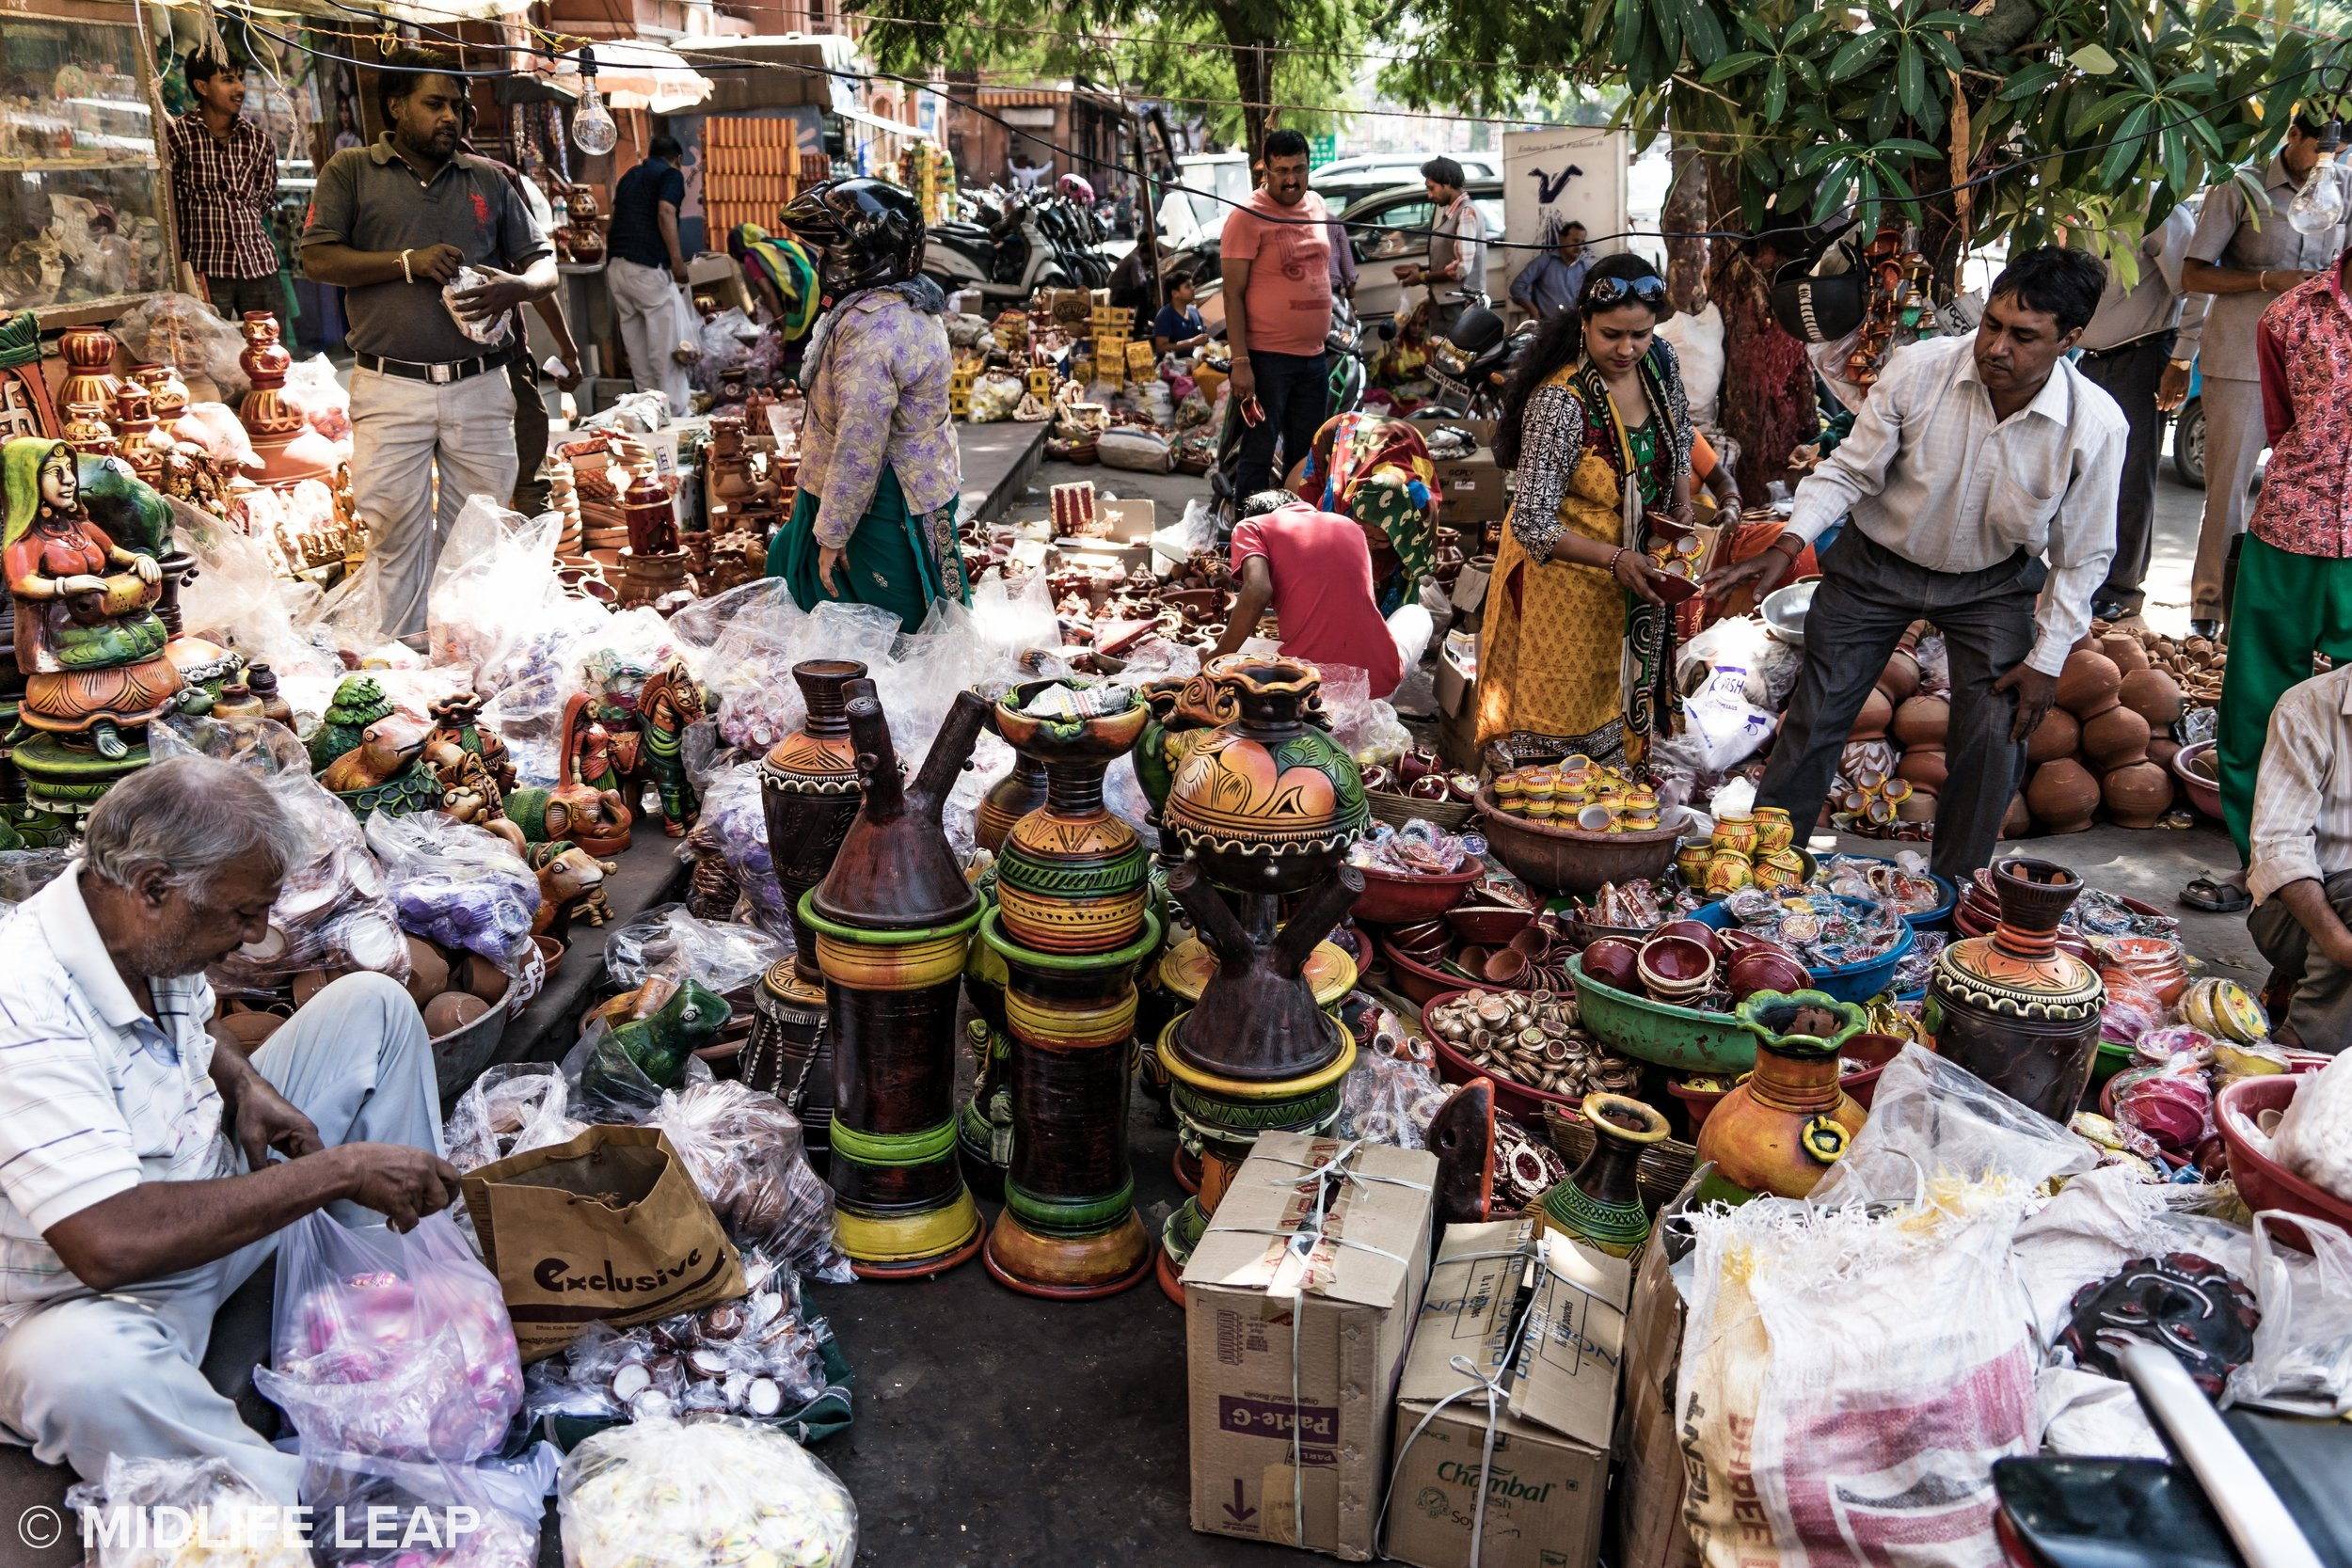 shopping-in-jaipur-markets-bazaars.jpg